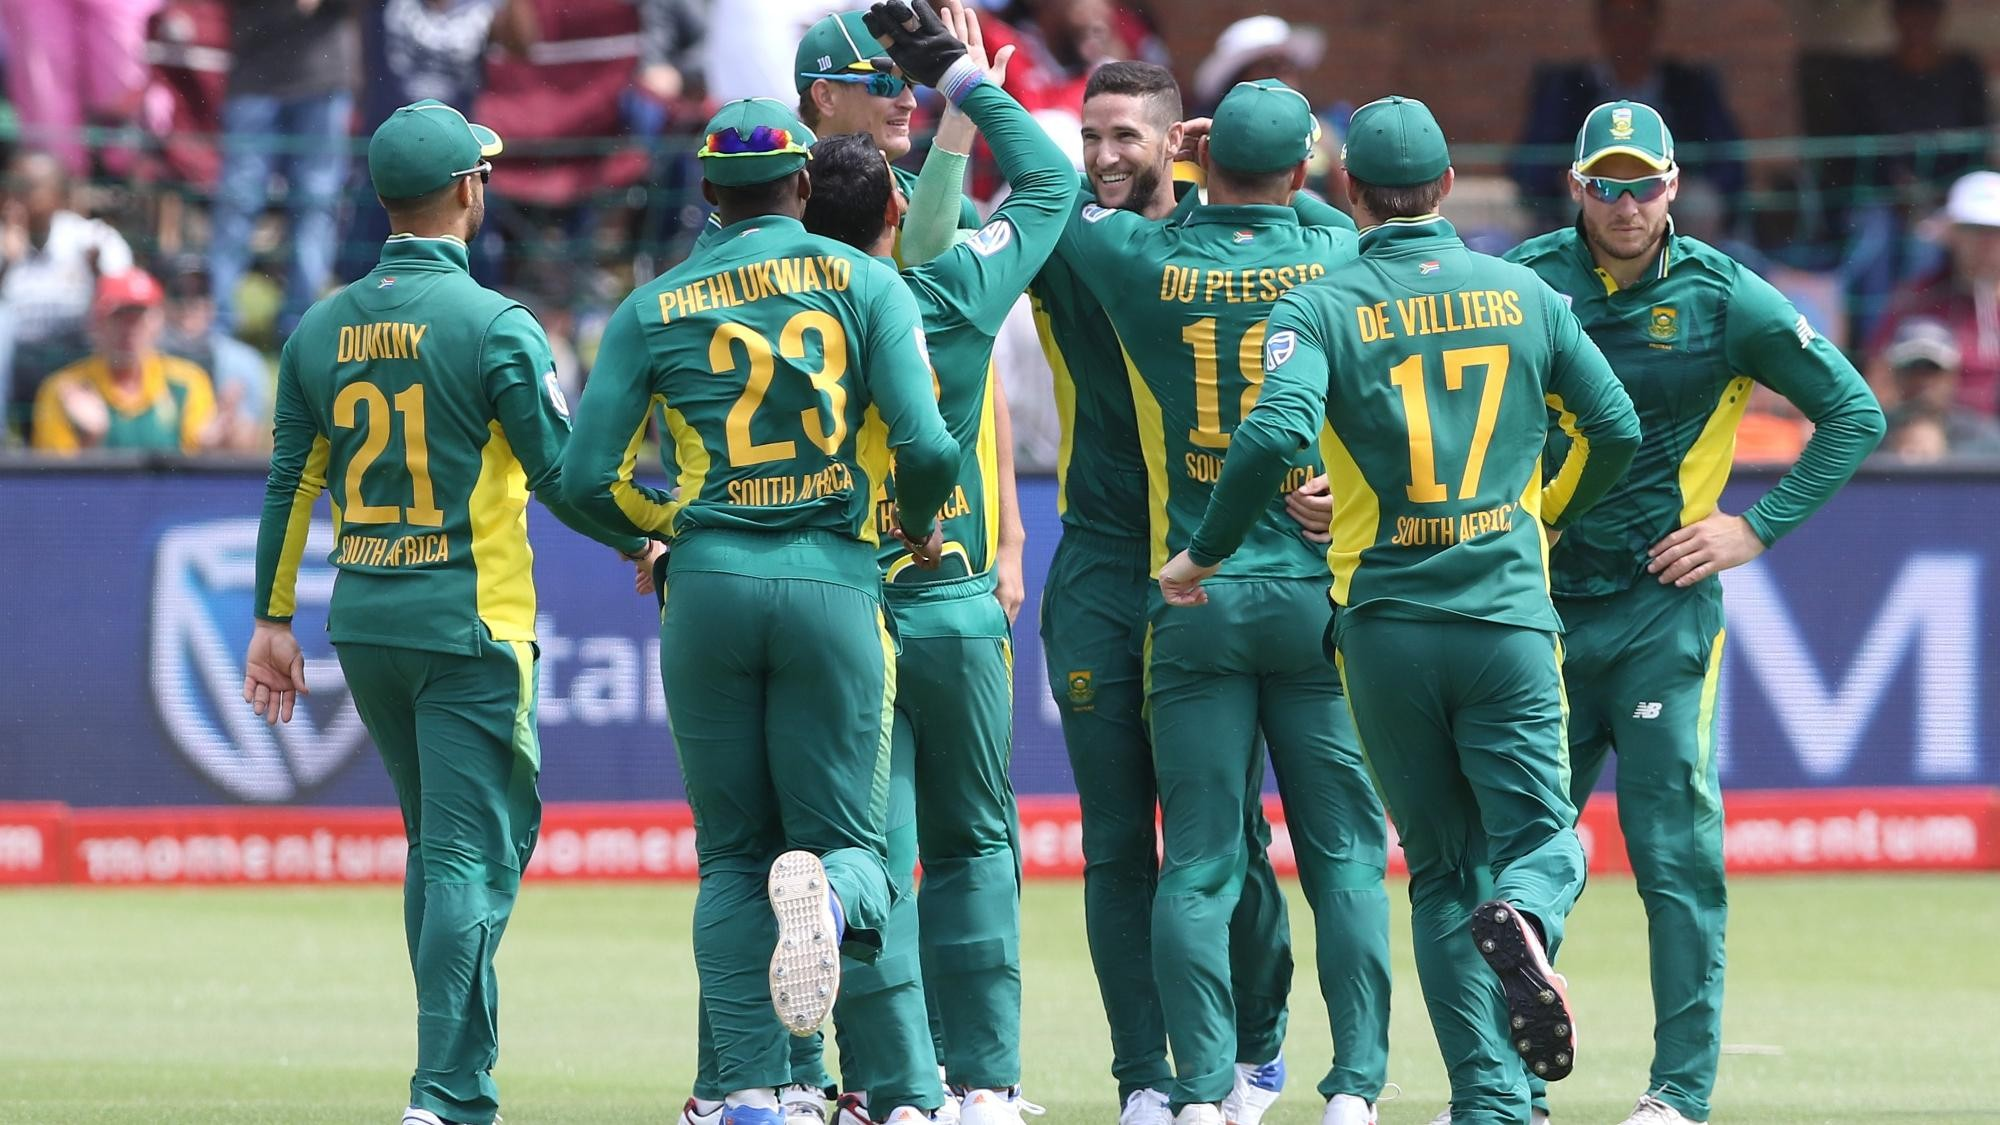 Cricket South Africa announces a bumper 2020-21 international season at home